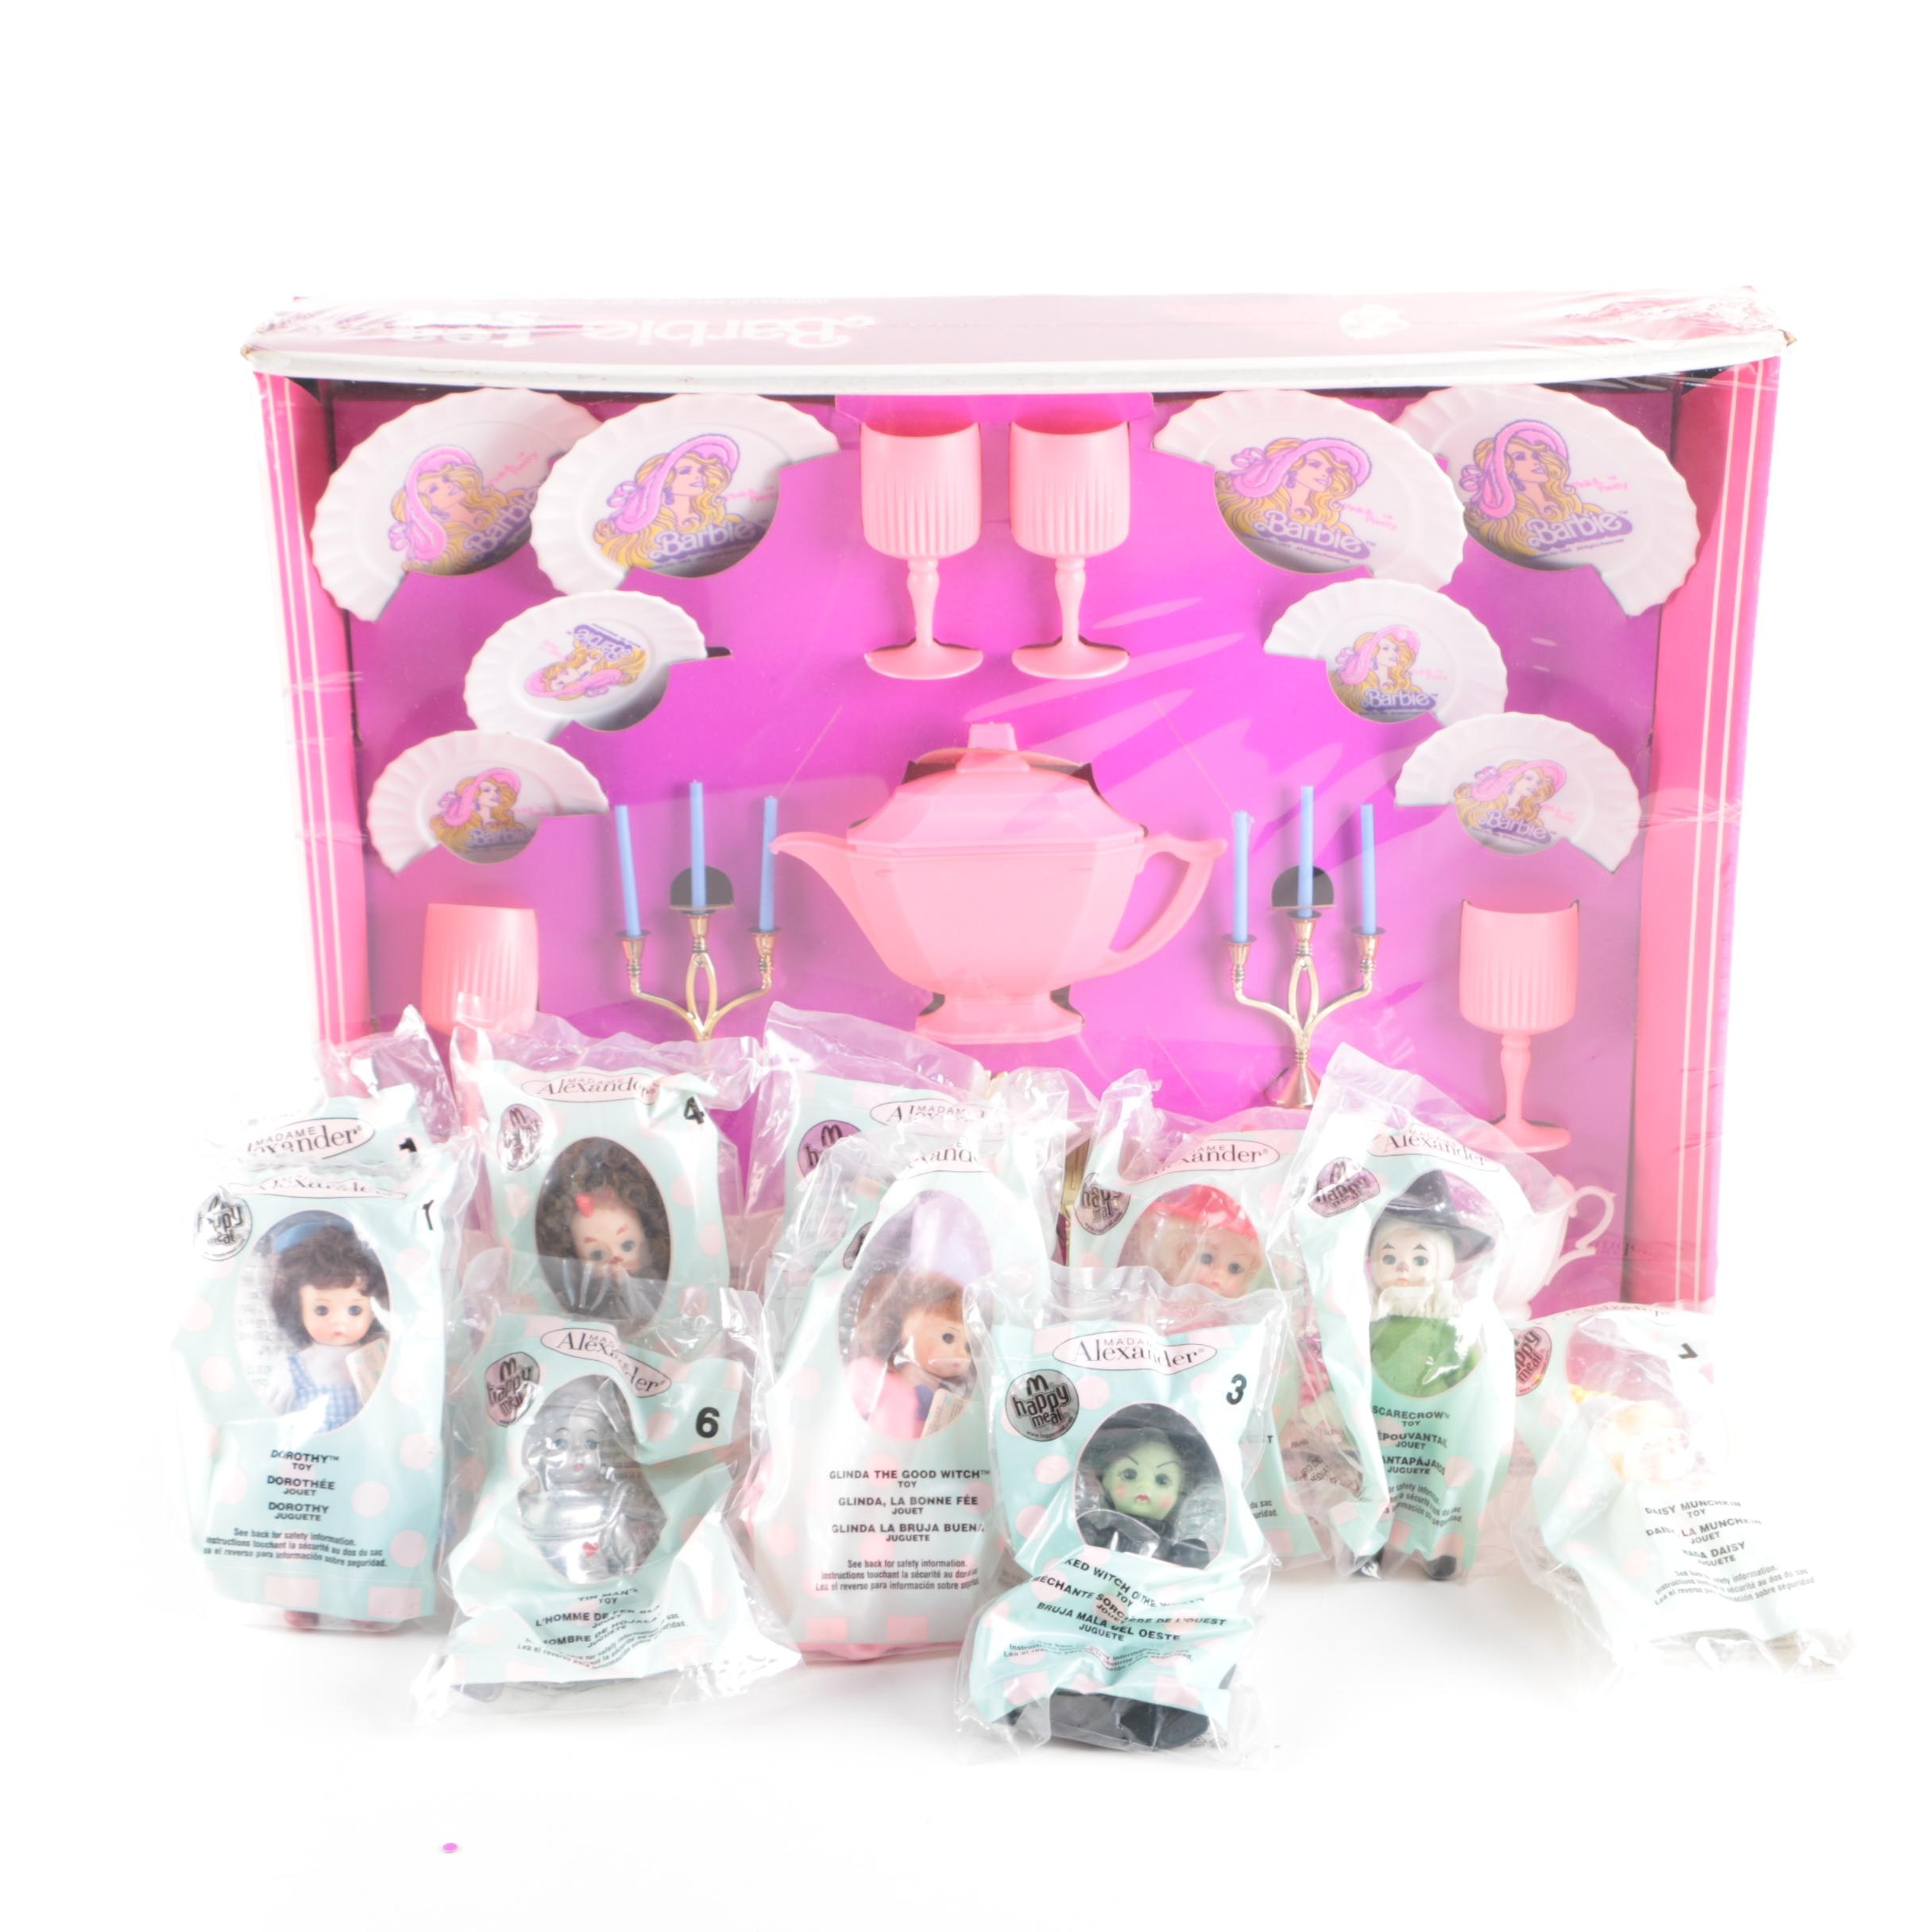 Barbie Tea Set and Madame Alexander Happy Meal Toys